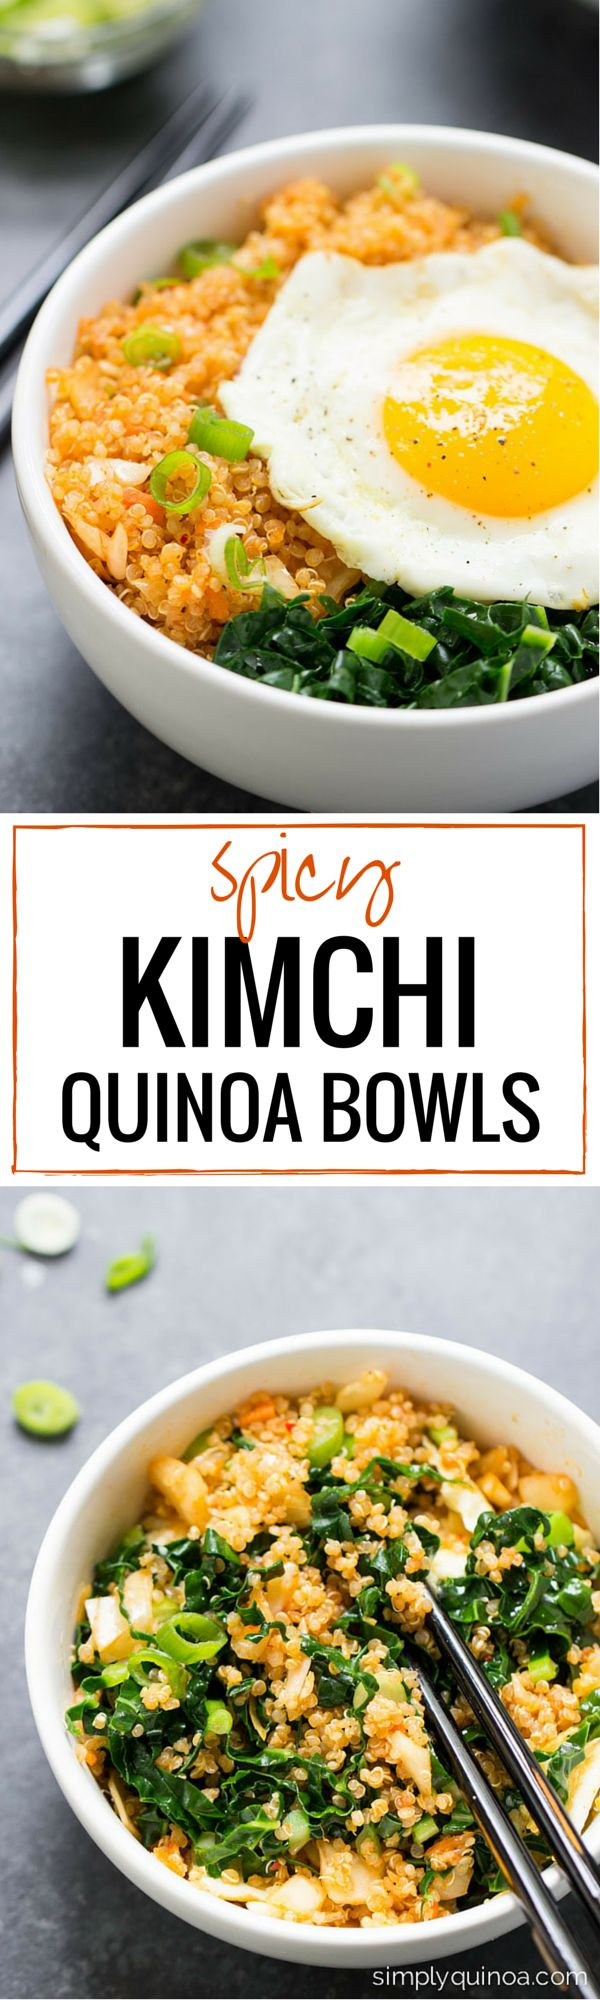 Spicy Kimchi Quinoa Bowls // a gluten-free dish that's filled with bacteria that's good for your gut